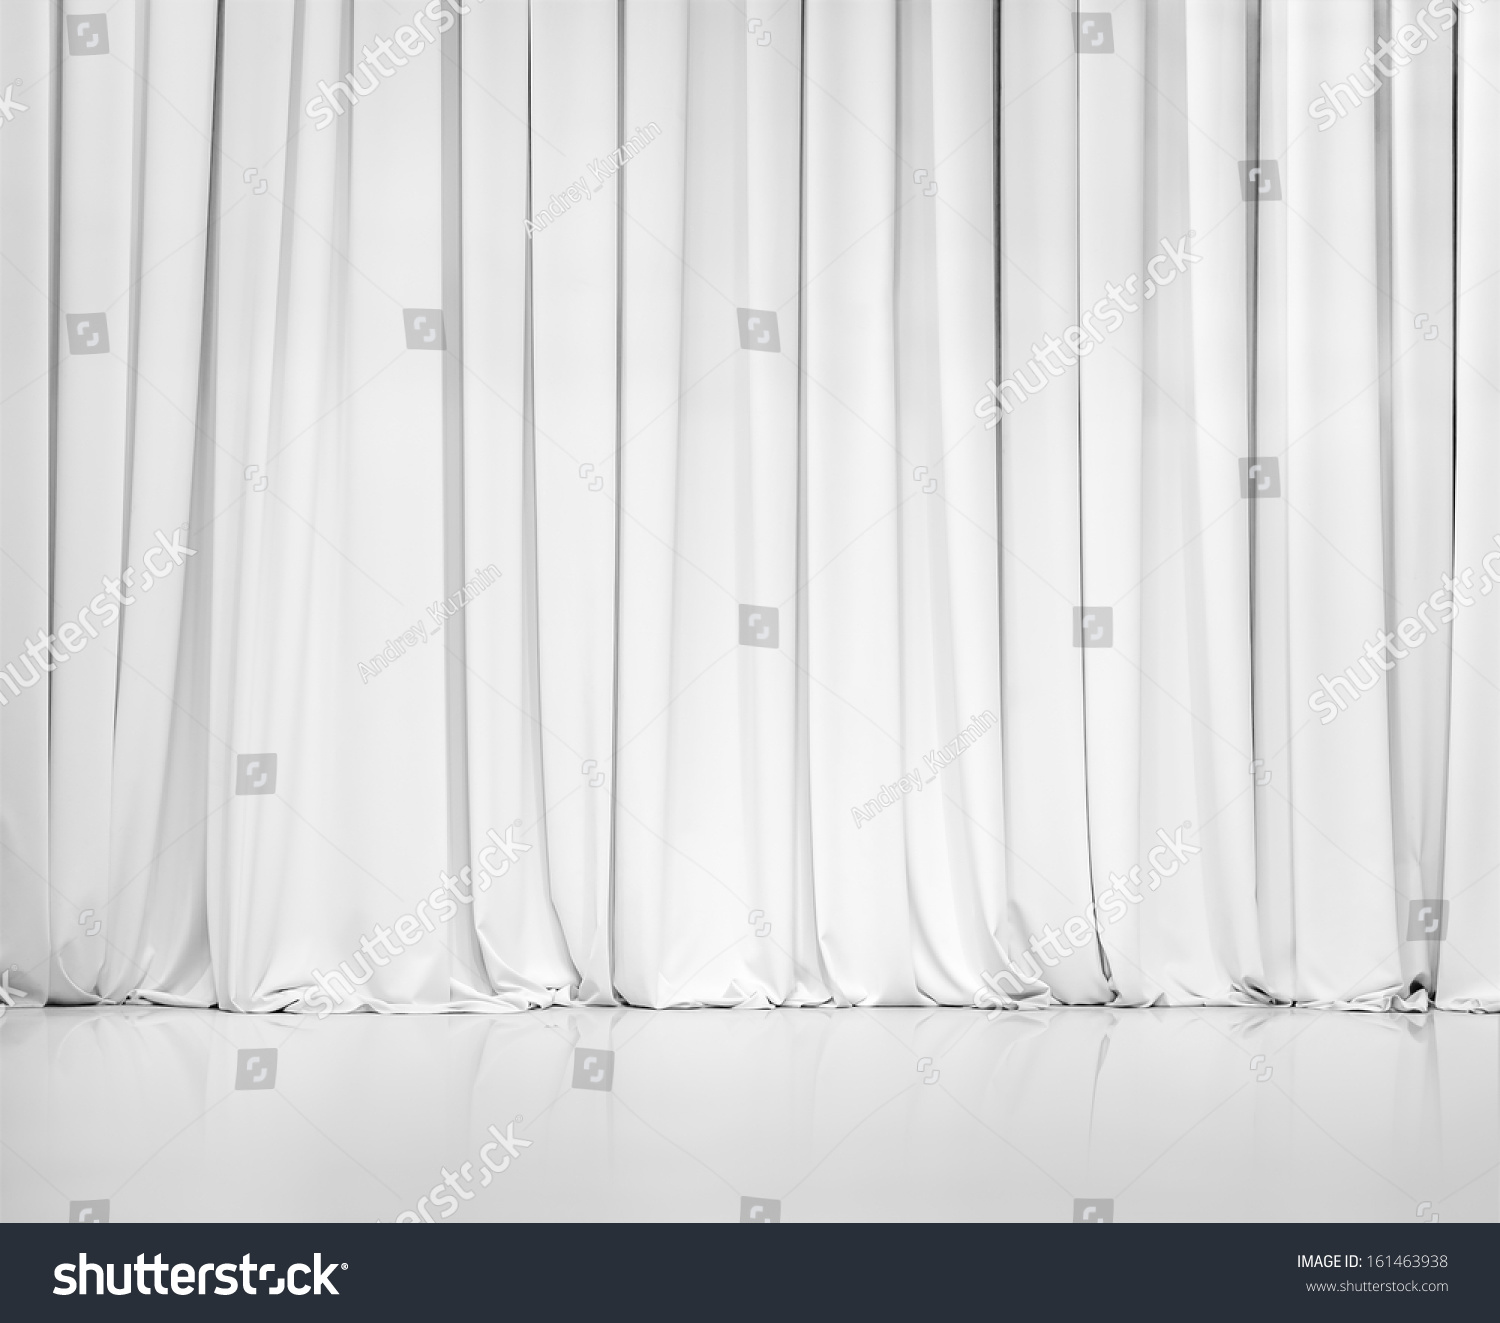 White curtain texture - White Curtain Or Drapes Background